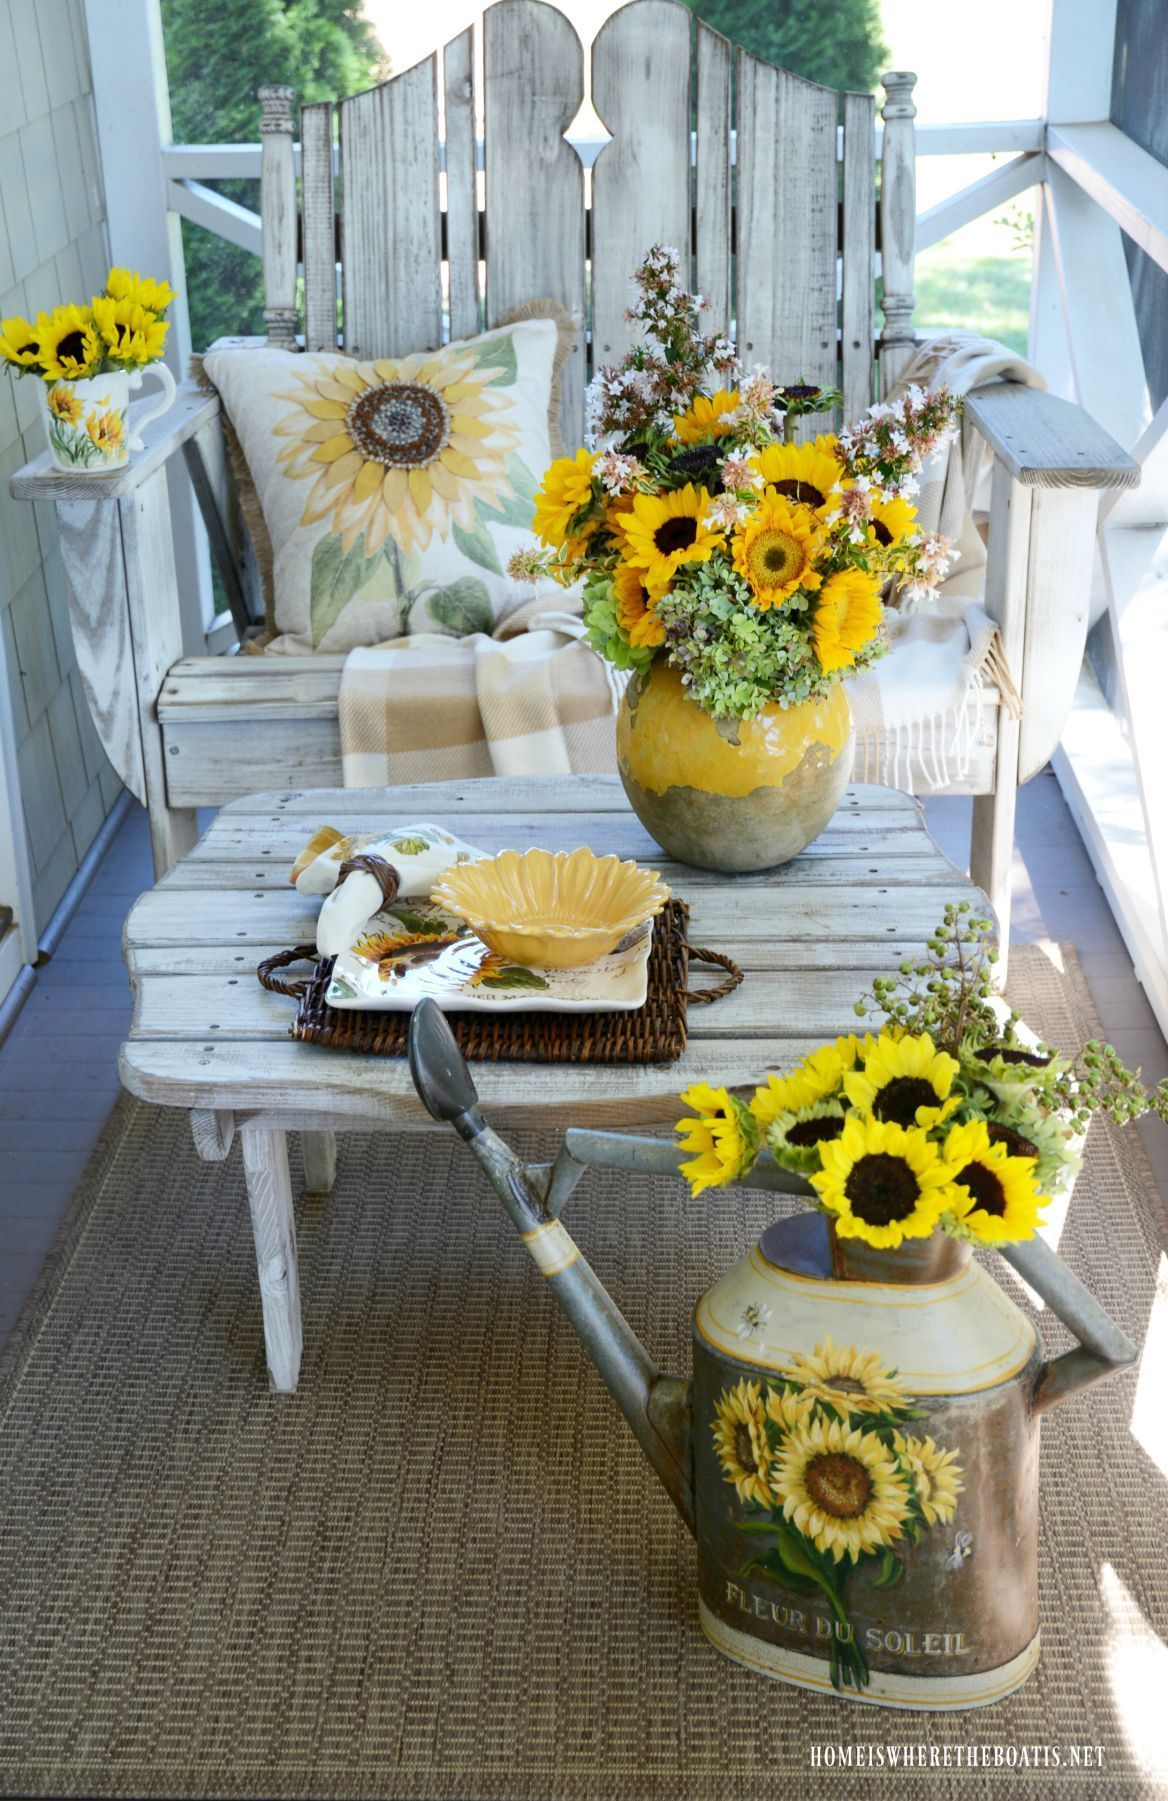 Hello September and Sunflowers on the Porch #helloseptember Hello September and Sunflowers on the Porch – Home is Where the Boat Is #helloseptember Hello September and Sunflowers on the Porch #helloseptember Hello September and Sunflowers on the Porch – Home is Where the Boat Is #helloseptember